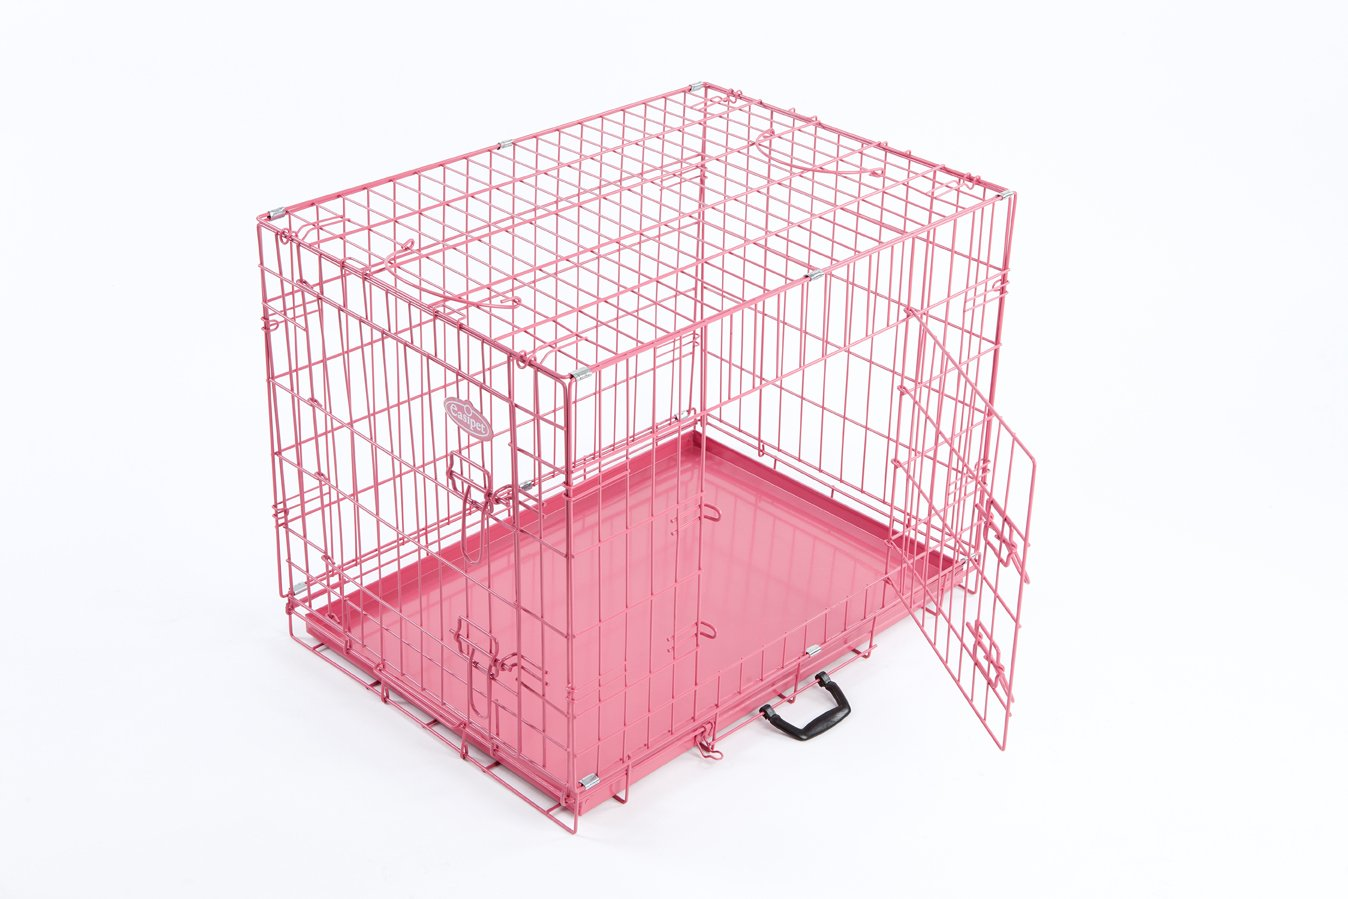 pink dog or puppy metal training cage crate xl (pink  cage  - pink dog or puppy metal training cage crate xl (pink  cage)amazoncouk pet supplies